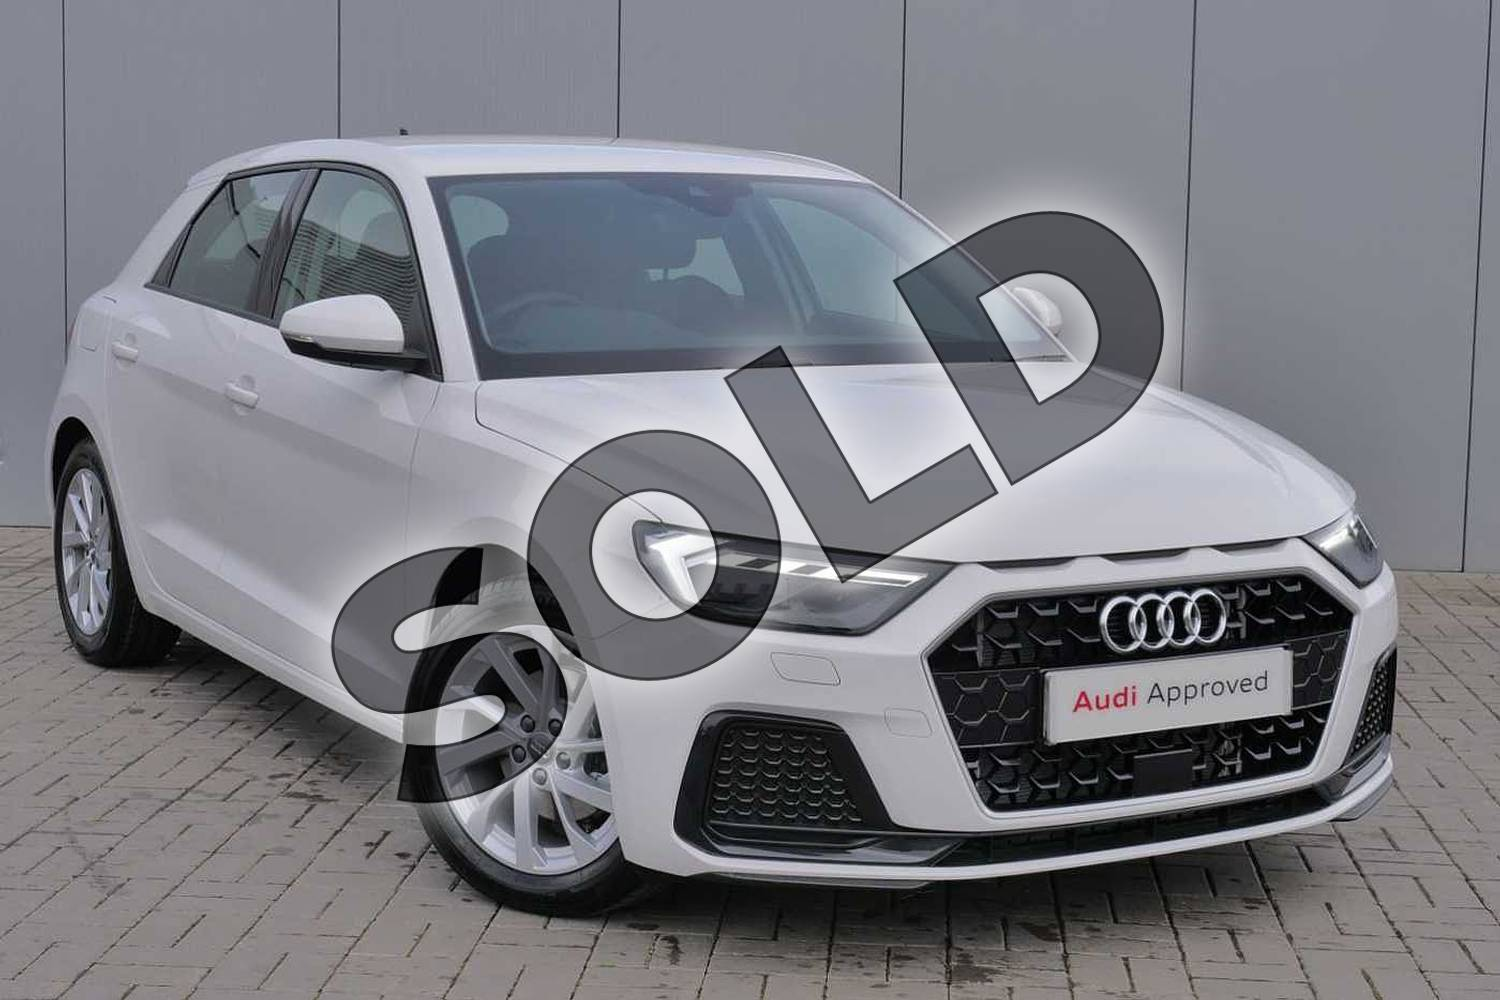 2019 Audi A1 Sportback 35 TFSI Sport 5dr S Tronic in Shell White at Stratford Audi